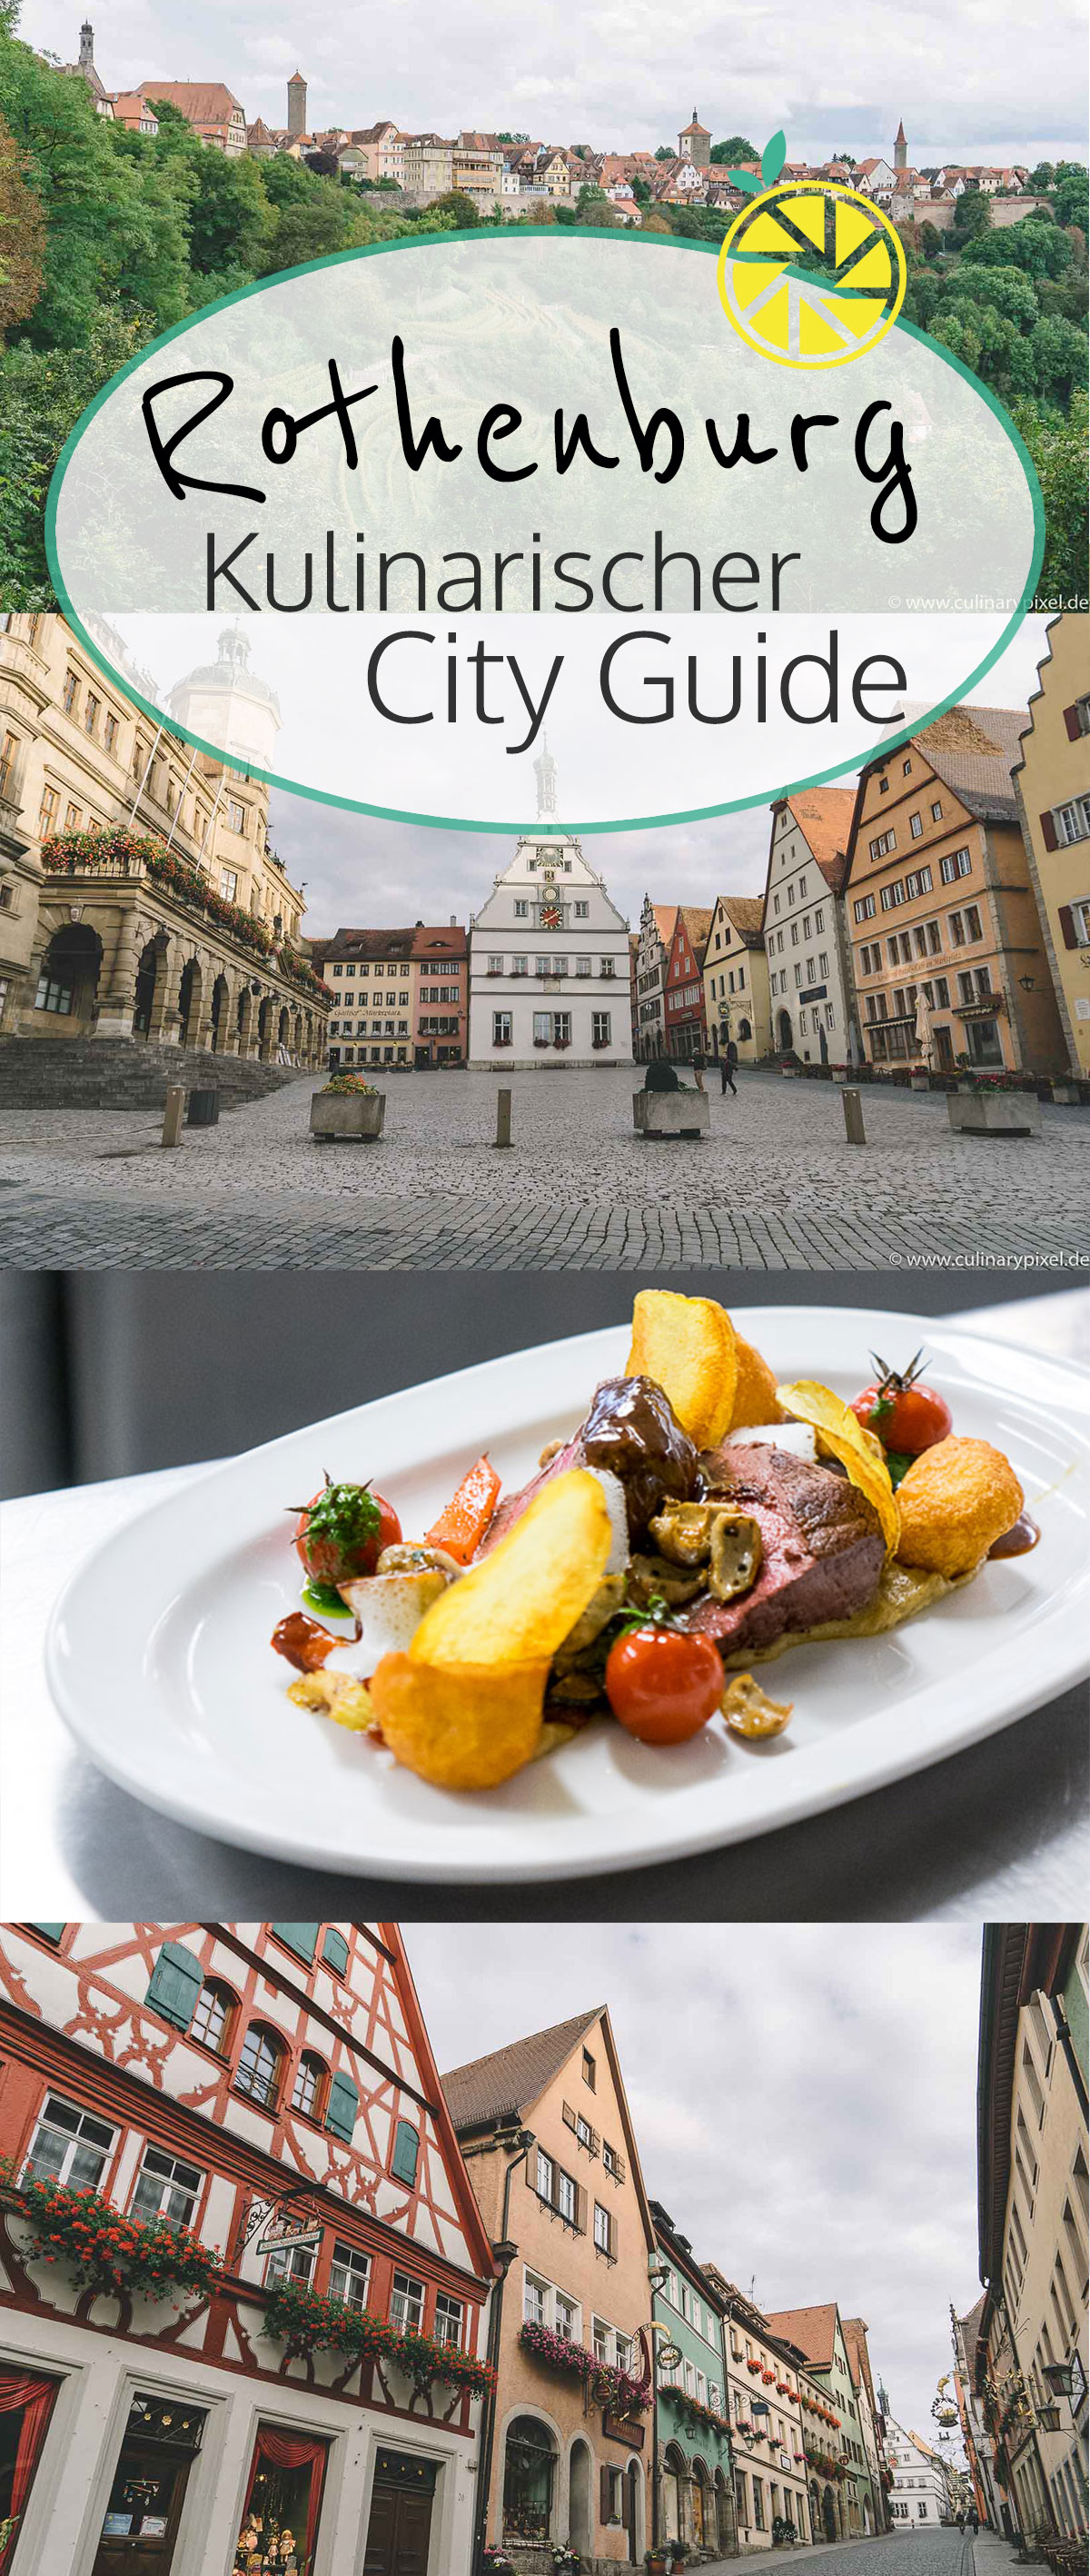 Rothenburg ob der Tauber City Guide mit Restaurants, Hotels, Cafés & Aktivitäten